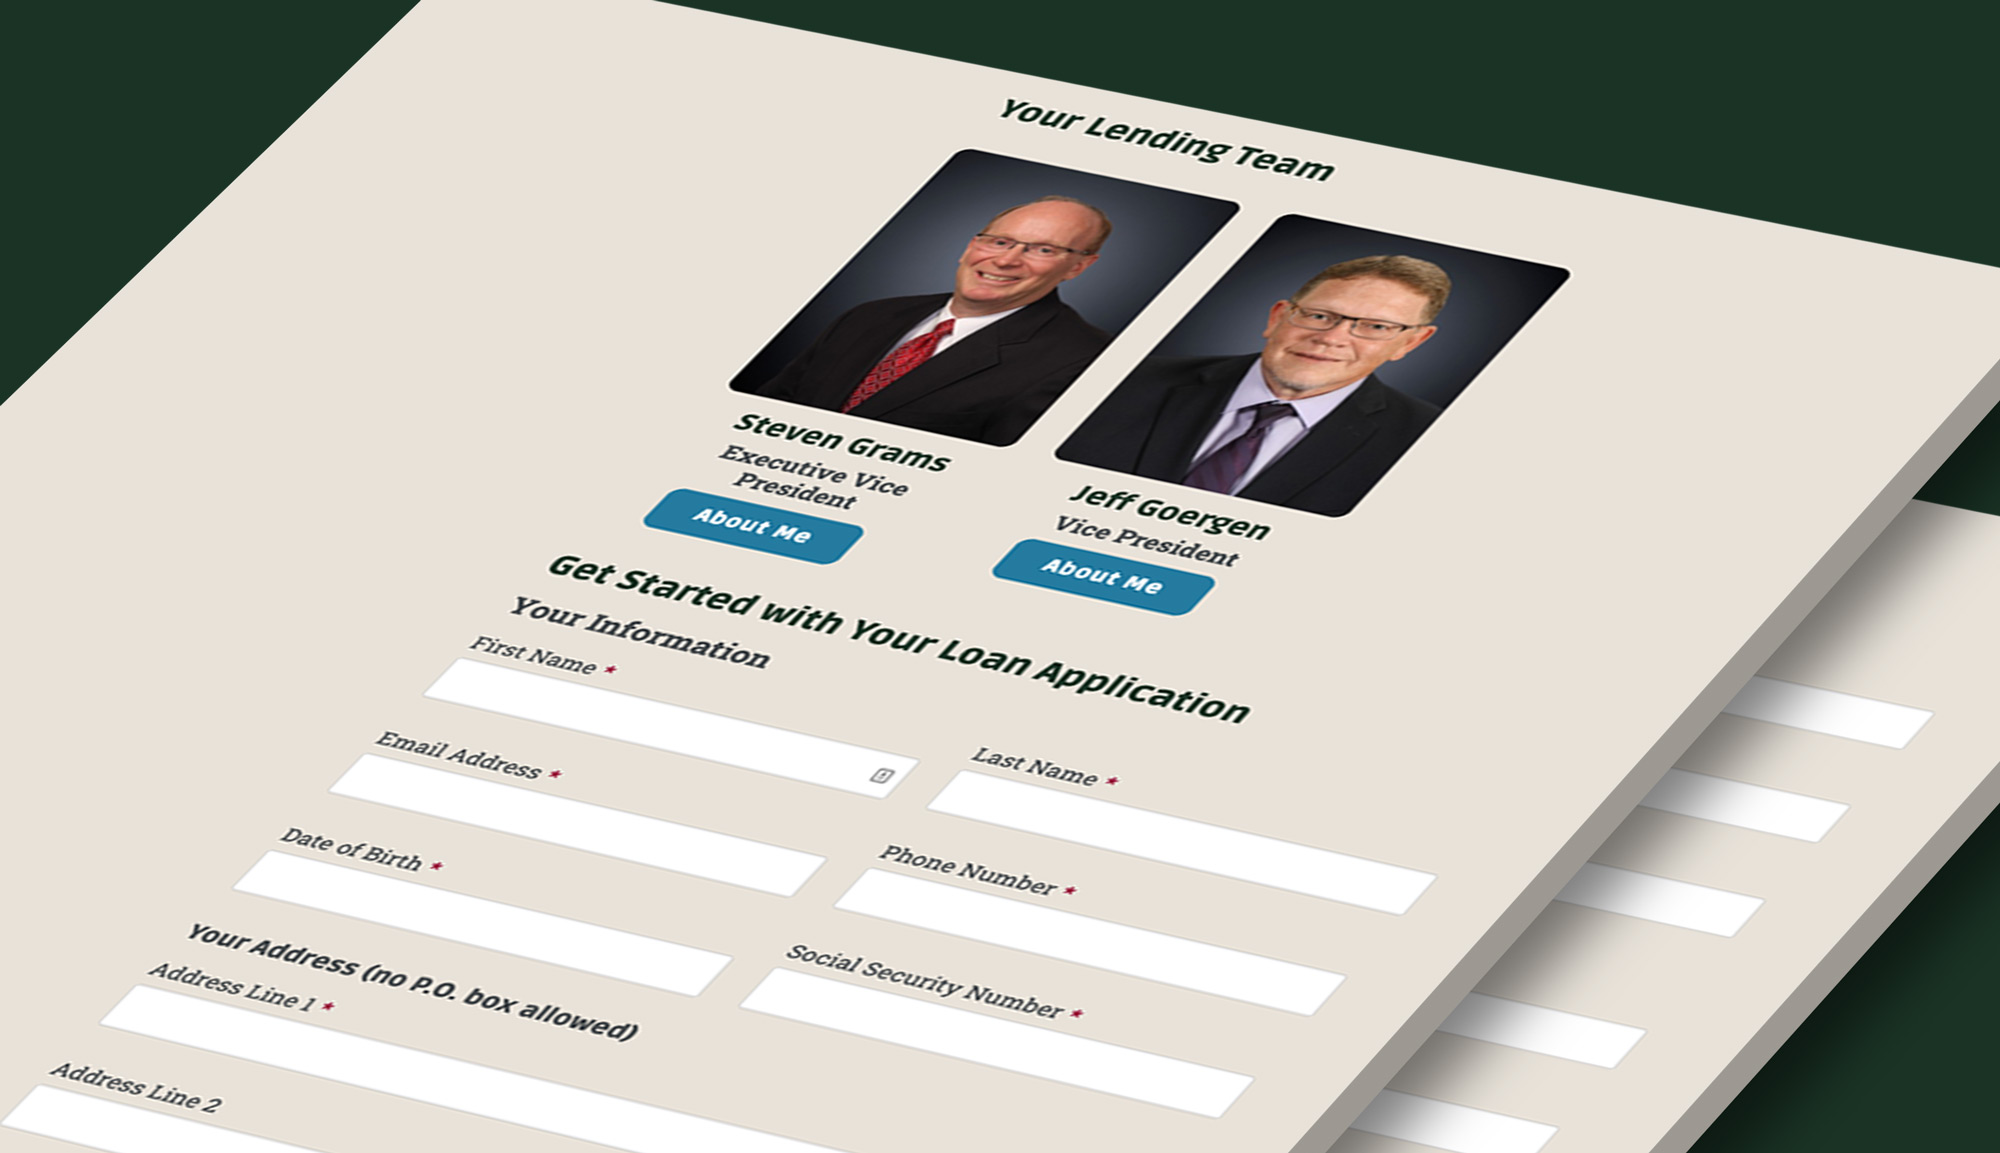 Example of lead-generating webforms on the Community Bank Owatonna's website